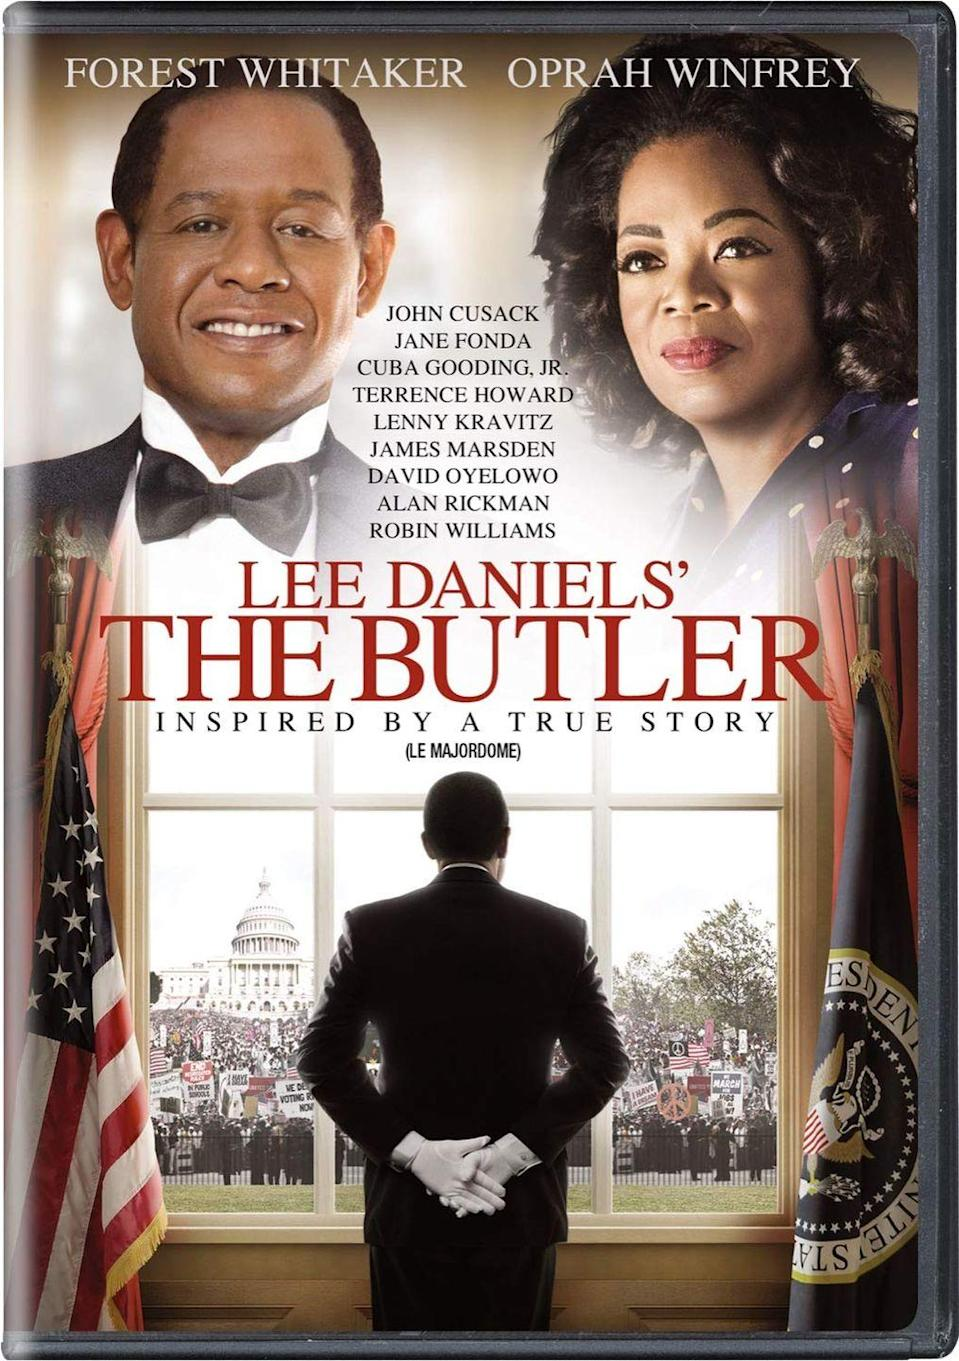 """<p><a class=""""link rapid-noclick-resp"""" href=""""https://www.amazon.com/Lee-Daniels-Butler-Forest-Whitaker/dp/B00H6PG2NG?tag=syn-yahoo-20&ascsubtag=%5Bartid%7C10063.g.35405329%5Bsrc%7Cyahoo-us"""" rel=""""nofollow noopener"""" target=""""_blank"""" data-ylk=""""slk:STREAM NOW"""">STREAM NOW</a></p><p>Inspired by the 2008 <em>Washington Post</em> article """"A Butler Well Served by This Election,"""" <em>The Butler </em>is loosely based on the life of Eugene Allen, a Black butler who spent 34 years working in the White House and witnessed several notable political and social events before retiring in 1986. </p>"""